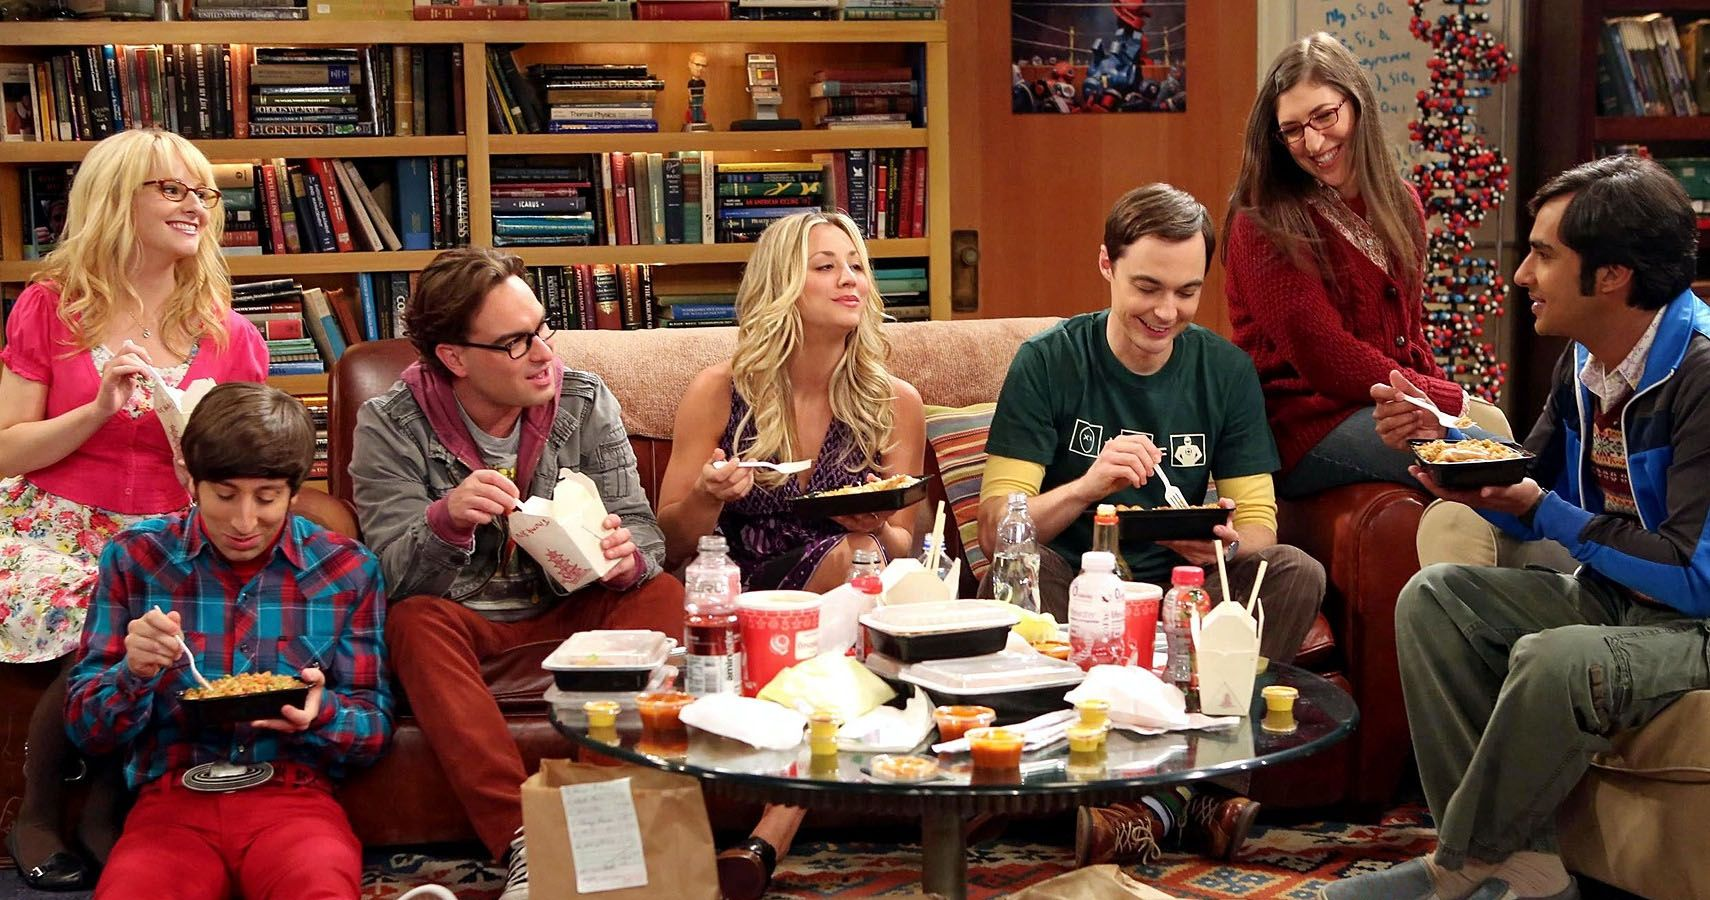 25 Little Things Fans Completely Missed In The Big Bang Theory